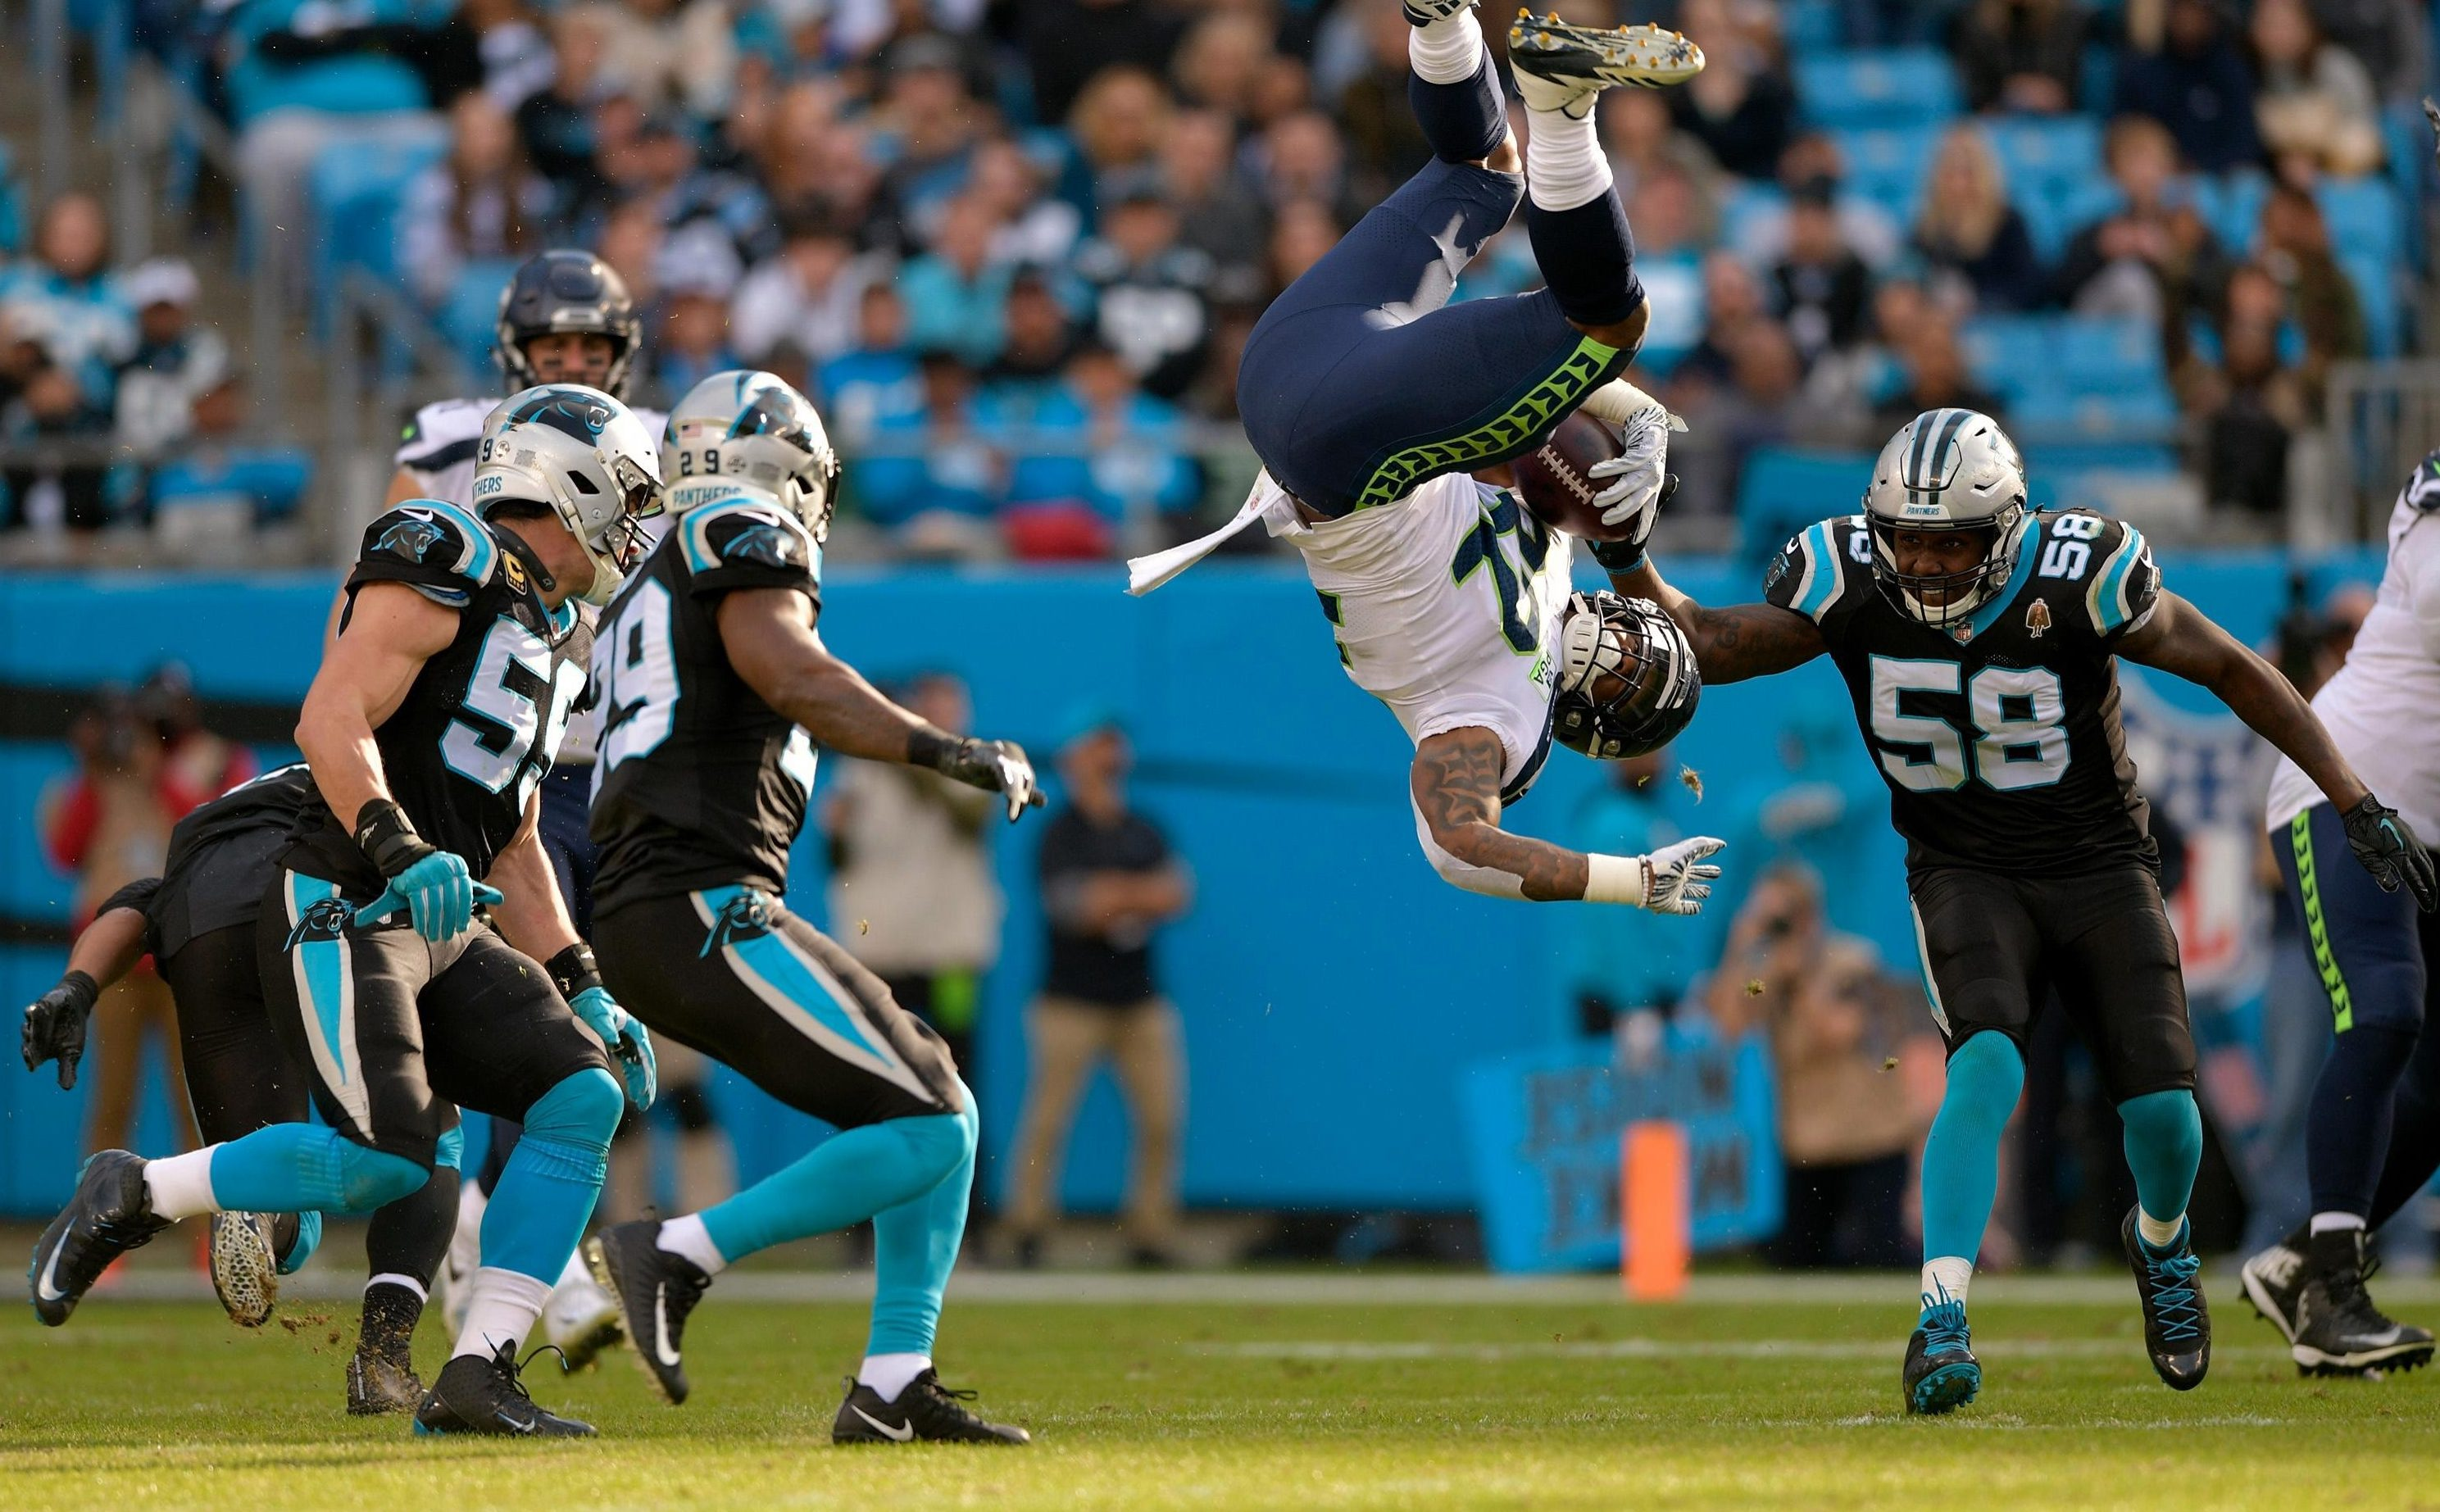 Some fans compared the Seattle Seahawks star to Spiderman